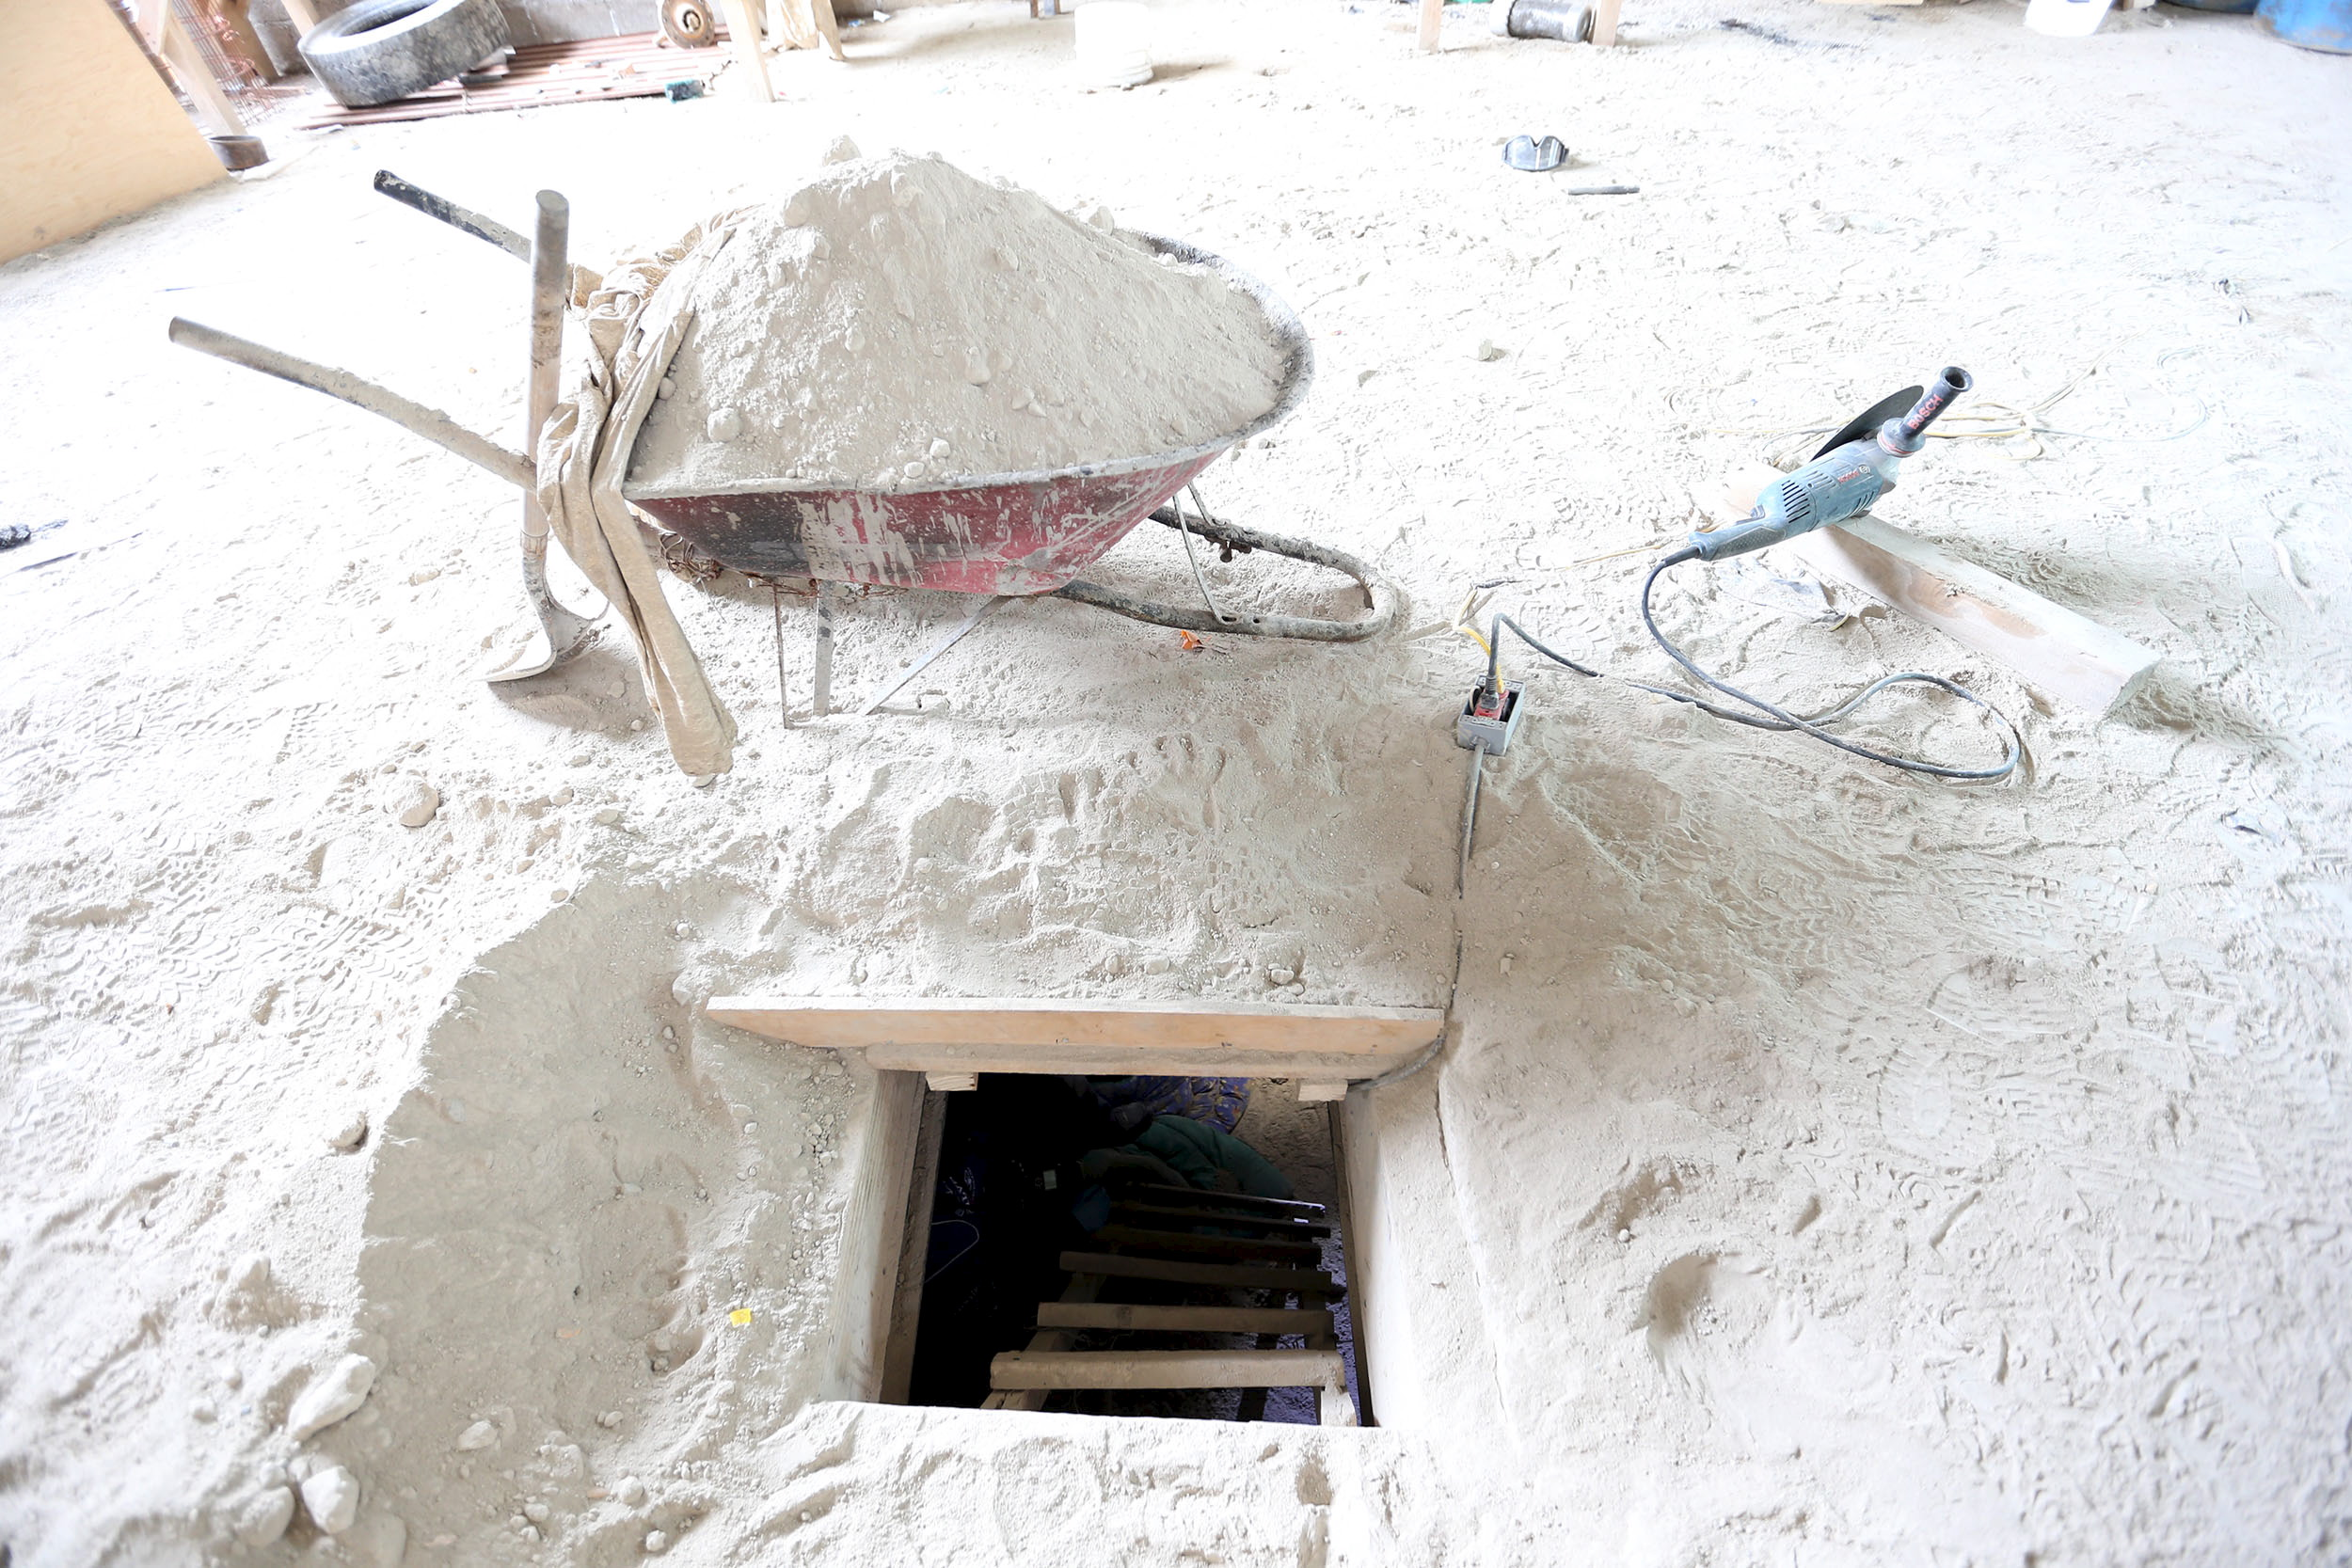 The entrance of a tunnel connected to the Altiplano Federal Penitentiary and used by drug lord Joaquin 'El Chapo' Guzman to escape, is seen in Almoloya de Juarez, on the outskirts of Mexico City, July 12, 2015. REUTERS/PGR - Attorney General's Office/Handout via Reuters ATTENTION EDITORS - FOR EDITORIAL USE ONLY. NOT FOR SALE FOR MARKETING OR ADVERTISING CAMPAIGNS. THIS PICTURE IS DISTRIBUTED EXACTLY AS RECEIVED BY REUTERS, AS A SERVICE TO CLIENTS. - RTX1K4M8